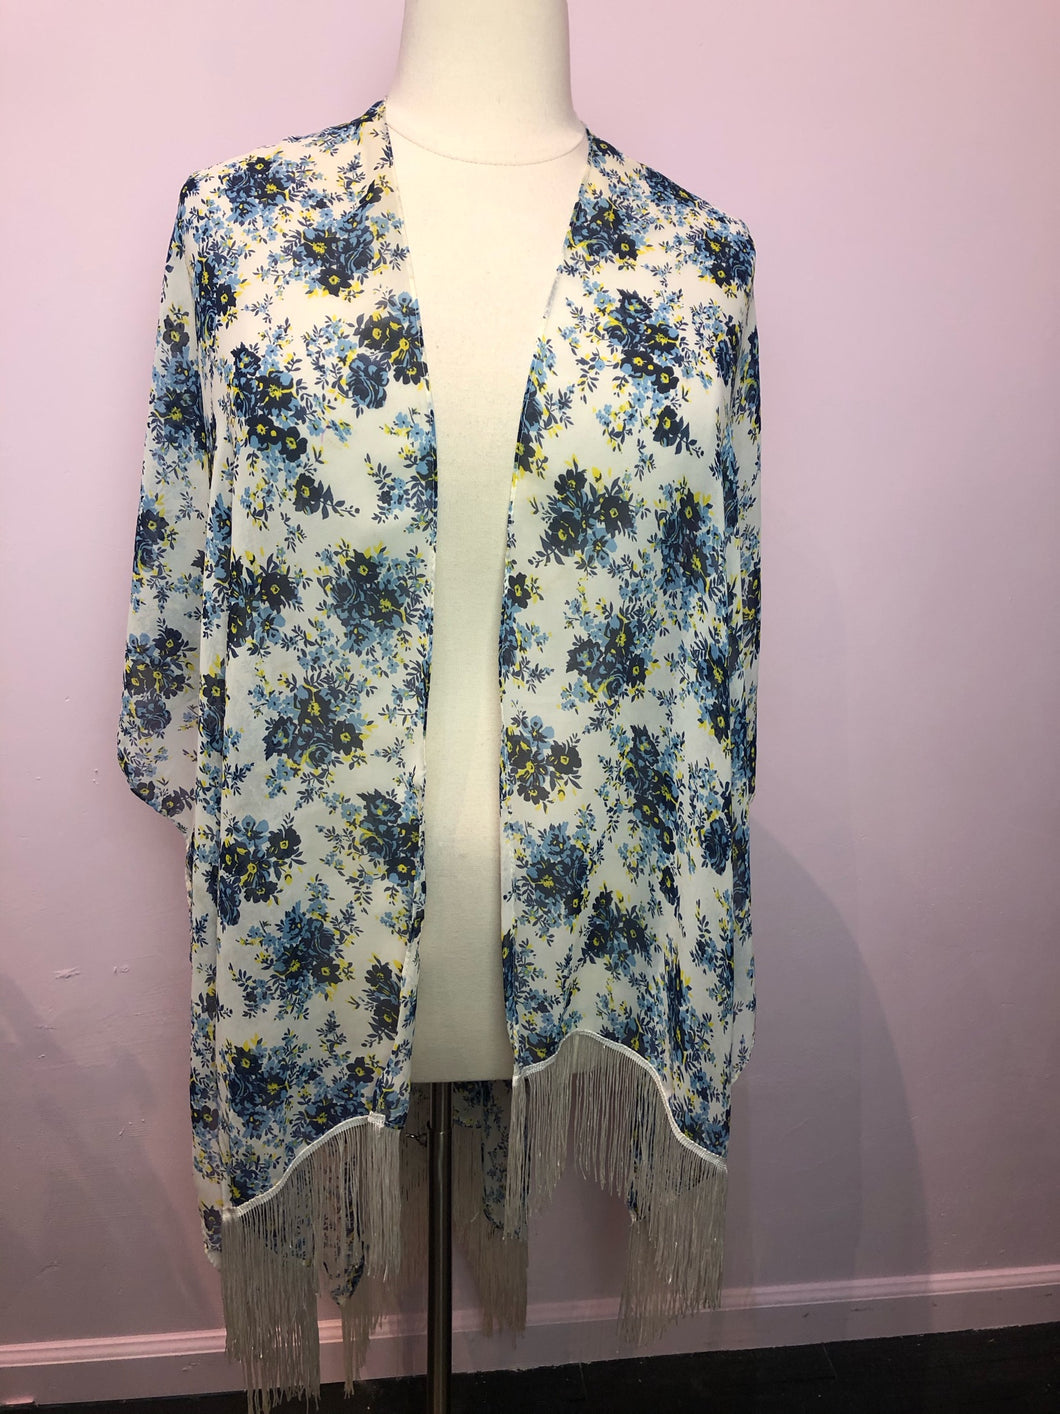 White, Blue, and Yellow Floral Print Torrid Duster with Fringe, Size 1